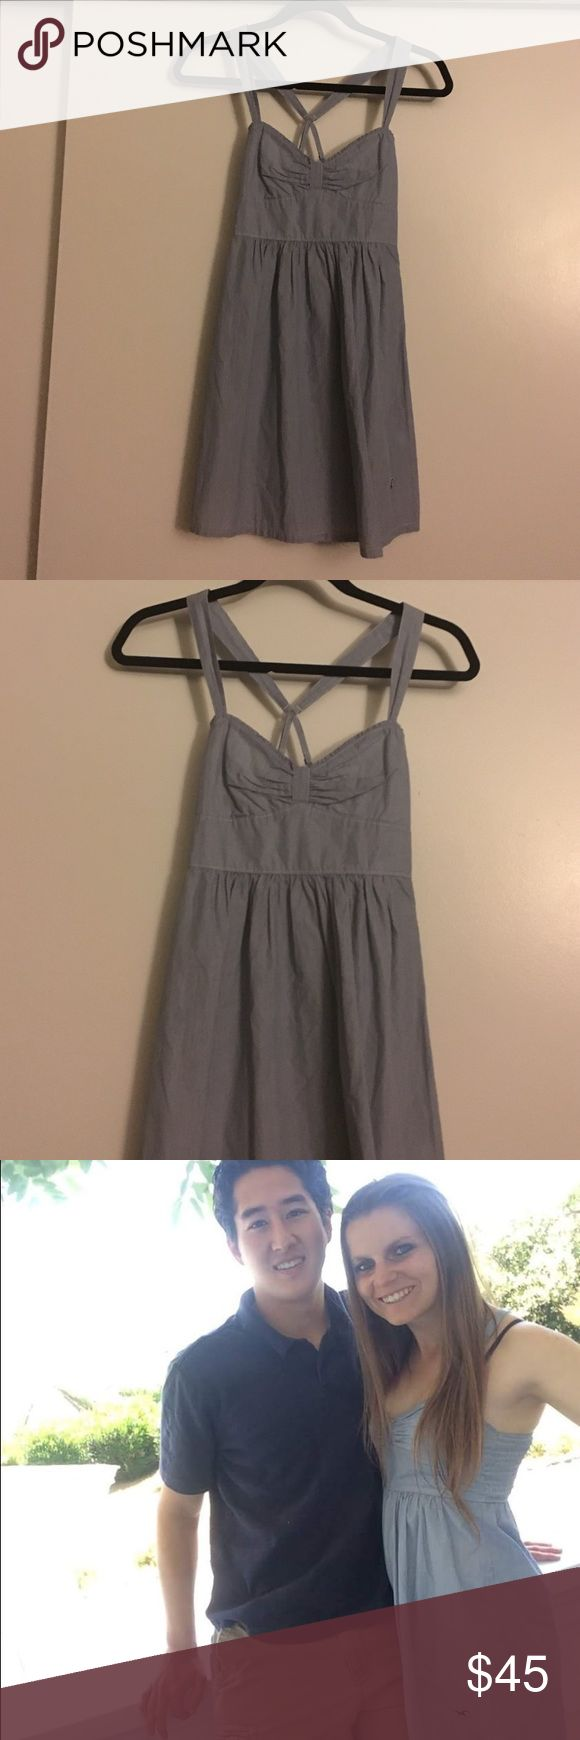 Hollister Dress Worn once super cute Hollister dress. In perfect condition, worn in Napa wine tasting. Perfect condition & super cute sundress! Hollister Dresses Mini